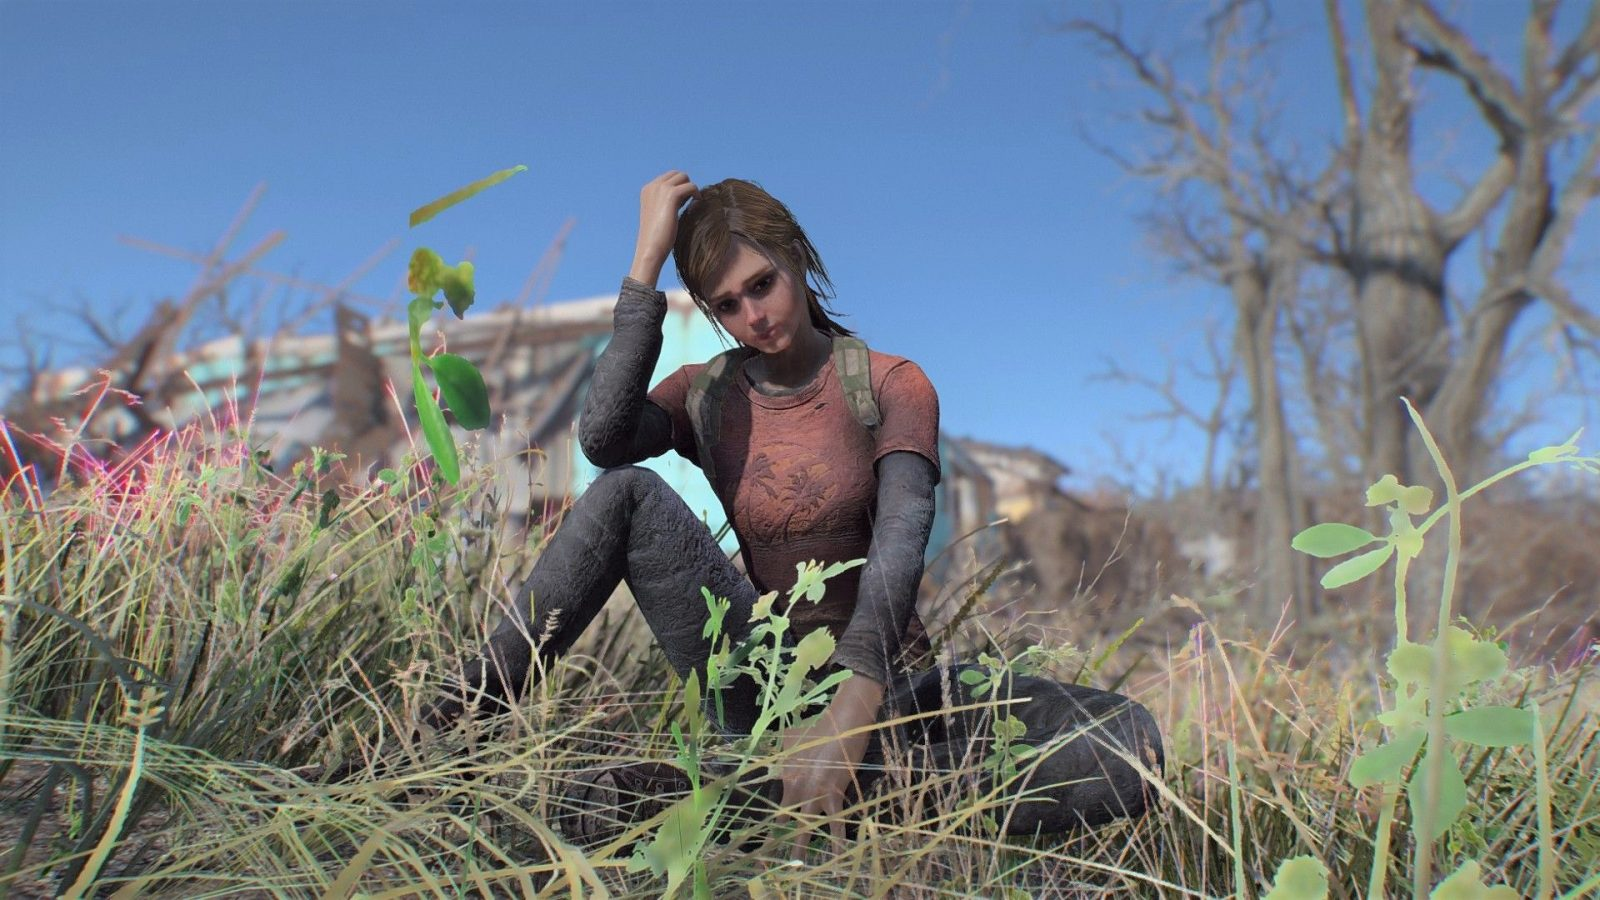 Play as Ellie from The Last of Us with this Fallout 4 mod